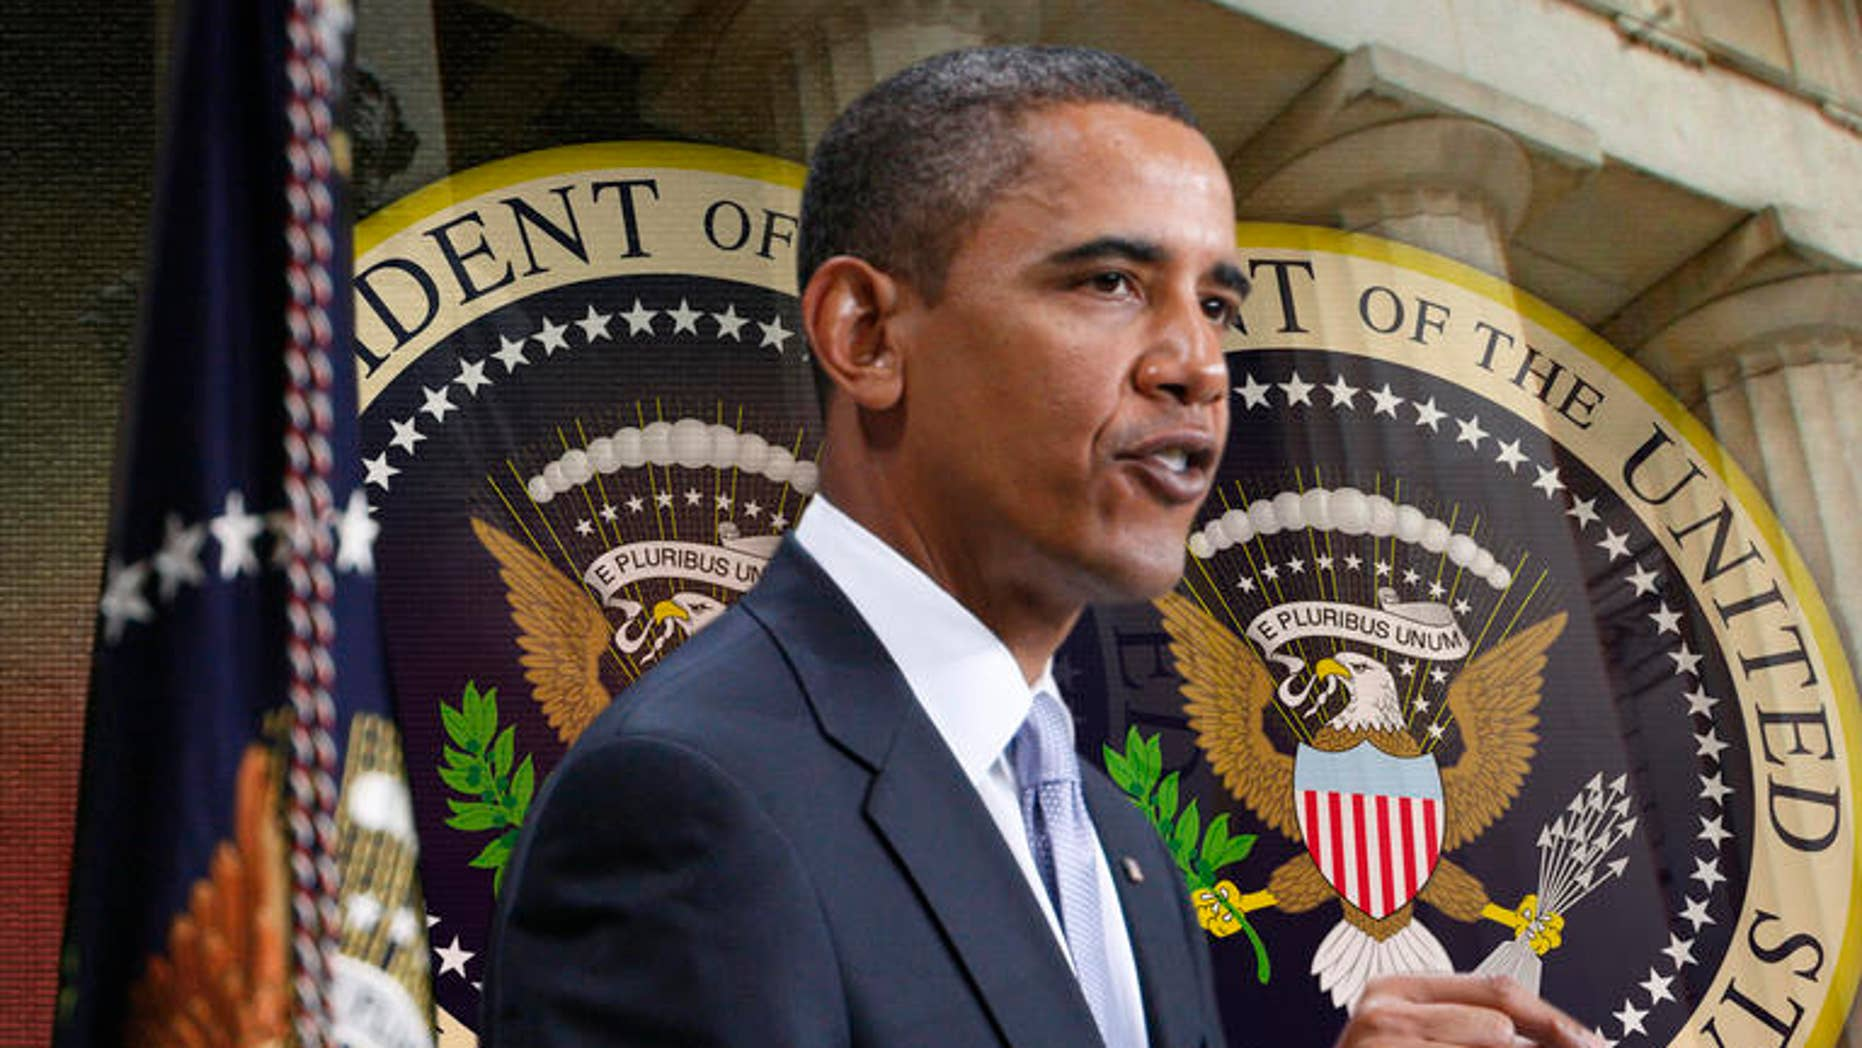 President Barack Obama speaks about the financial crisis, on the anniversary of the Lehman Brothers collapse, Monday, Sept. 14, 2009, at Federal Hall on Wall Street in New York. (AP Photo/Charles Dharapak)